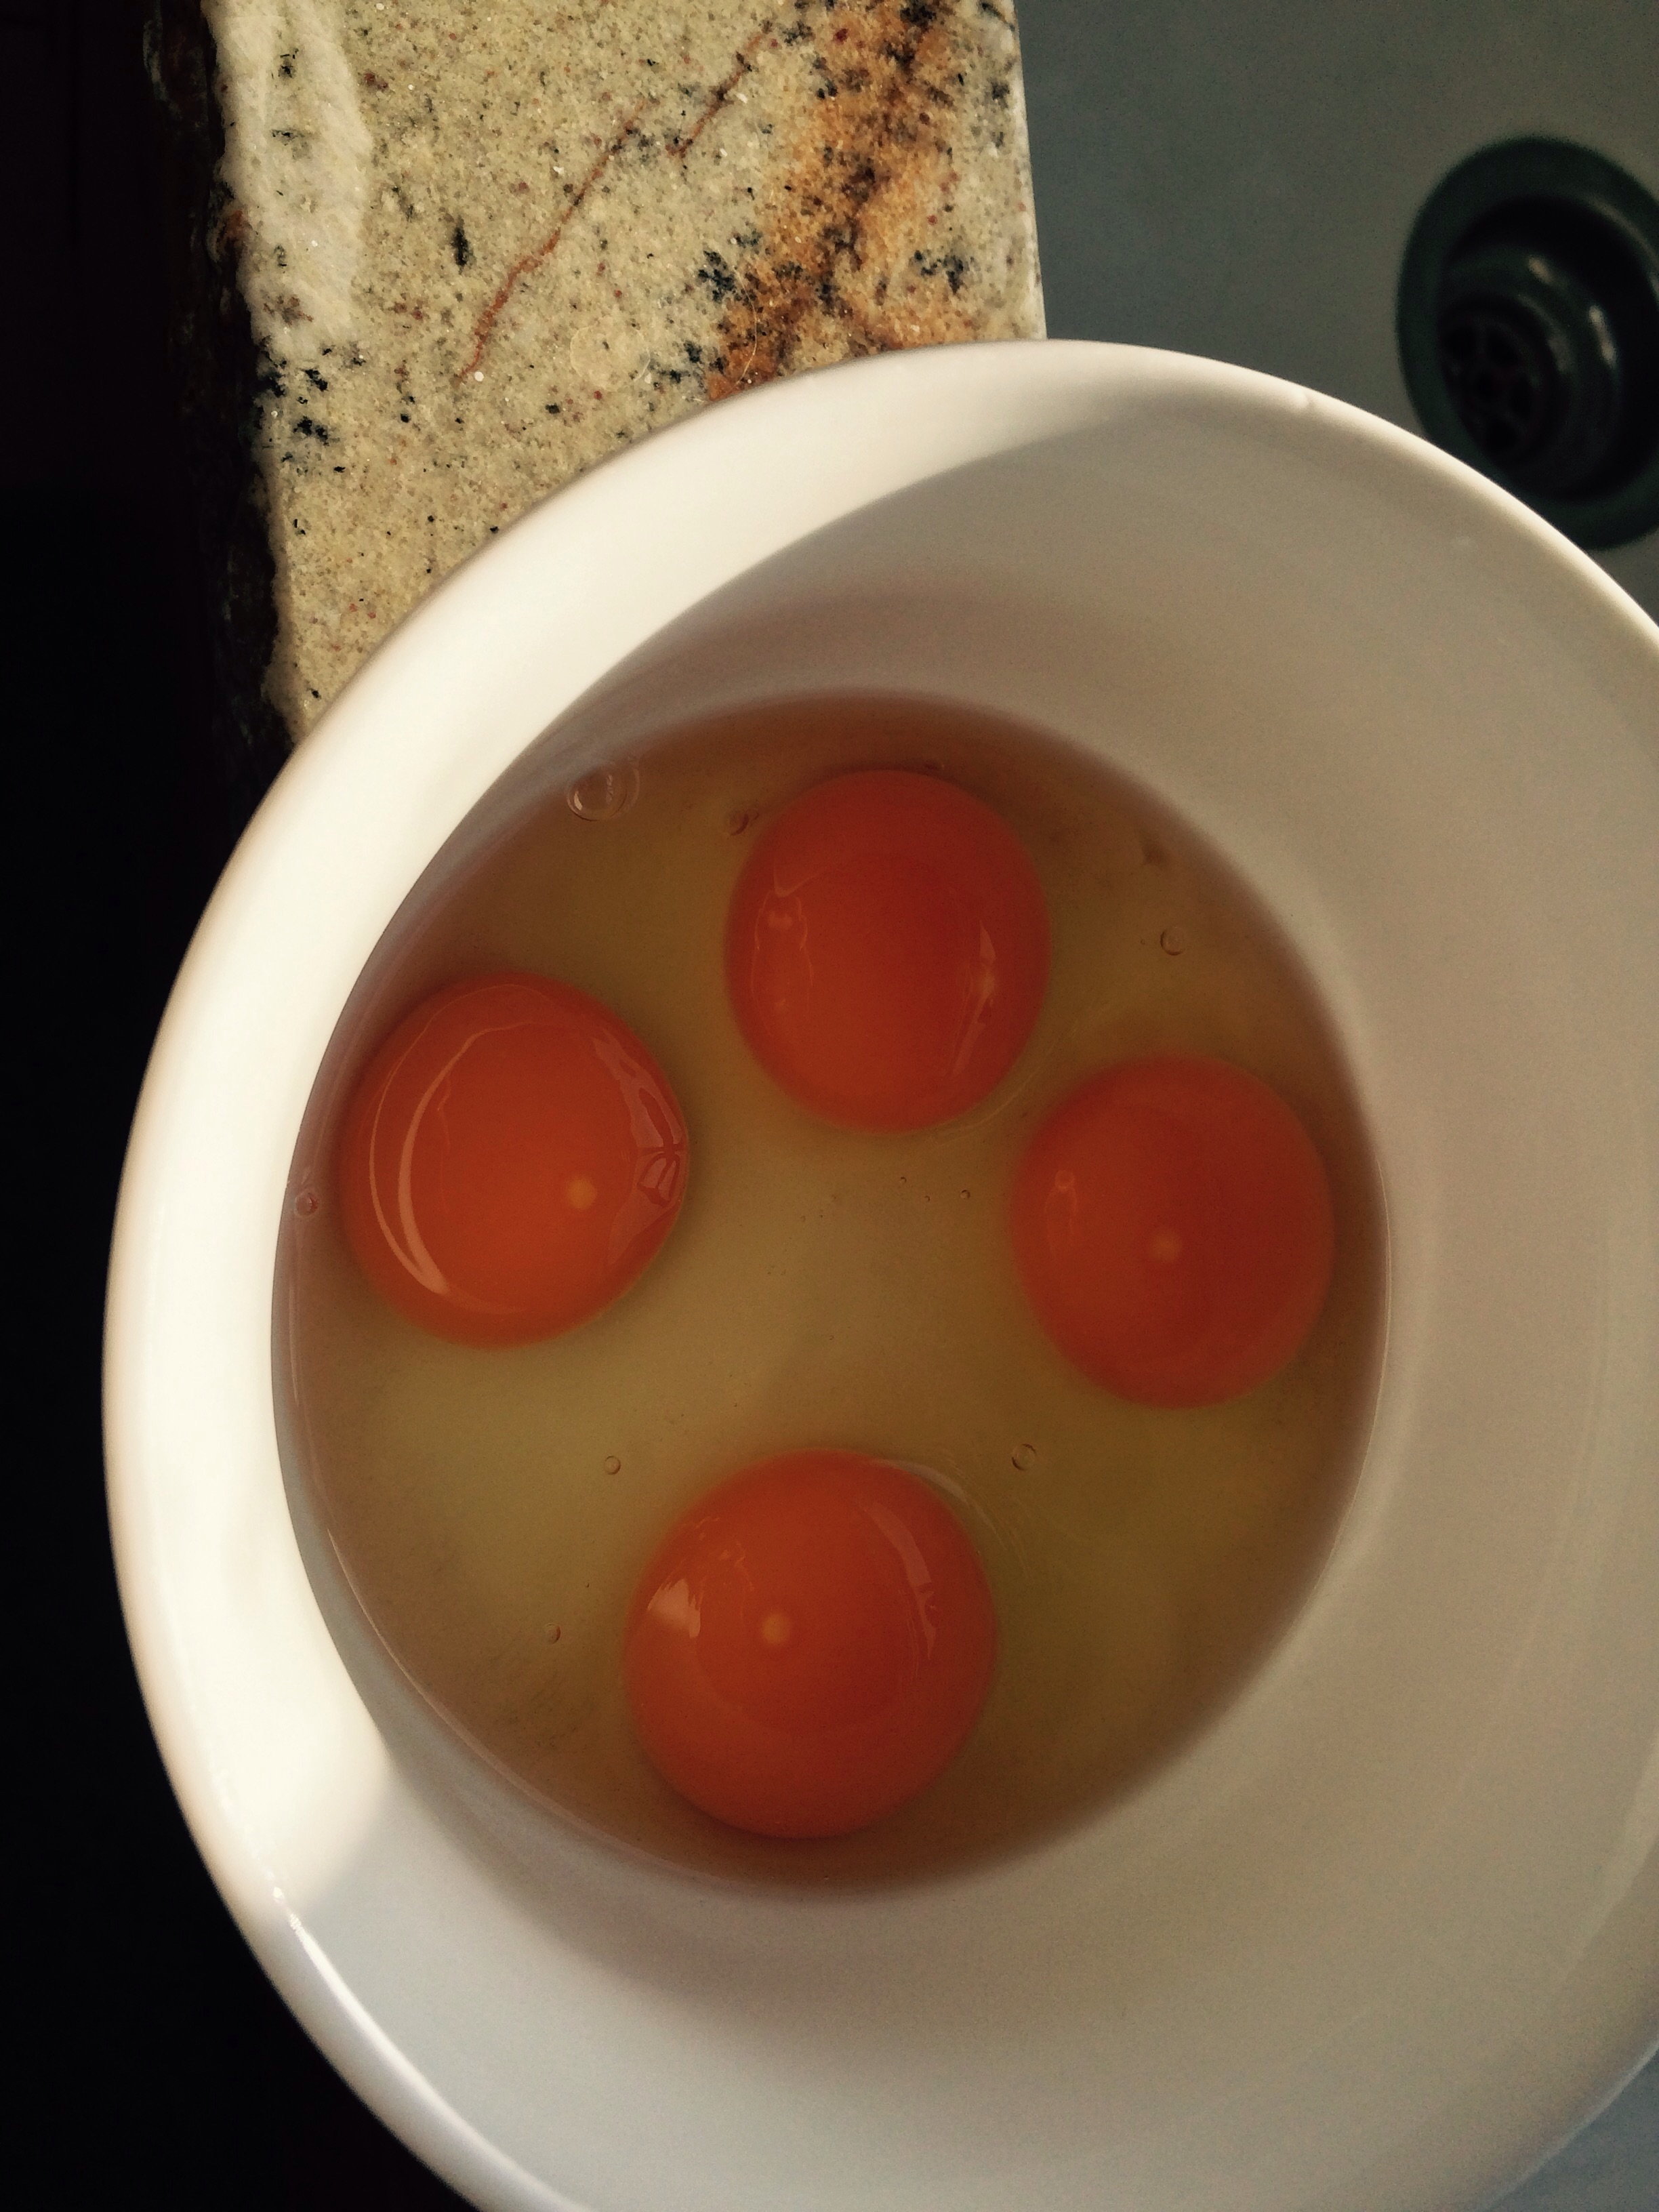 These eggs are so rich and creamy unlike chickens geania hens lay eggs twice a year for a few weeks at a time